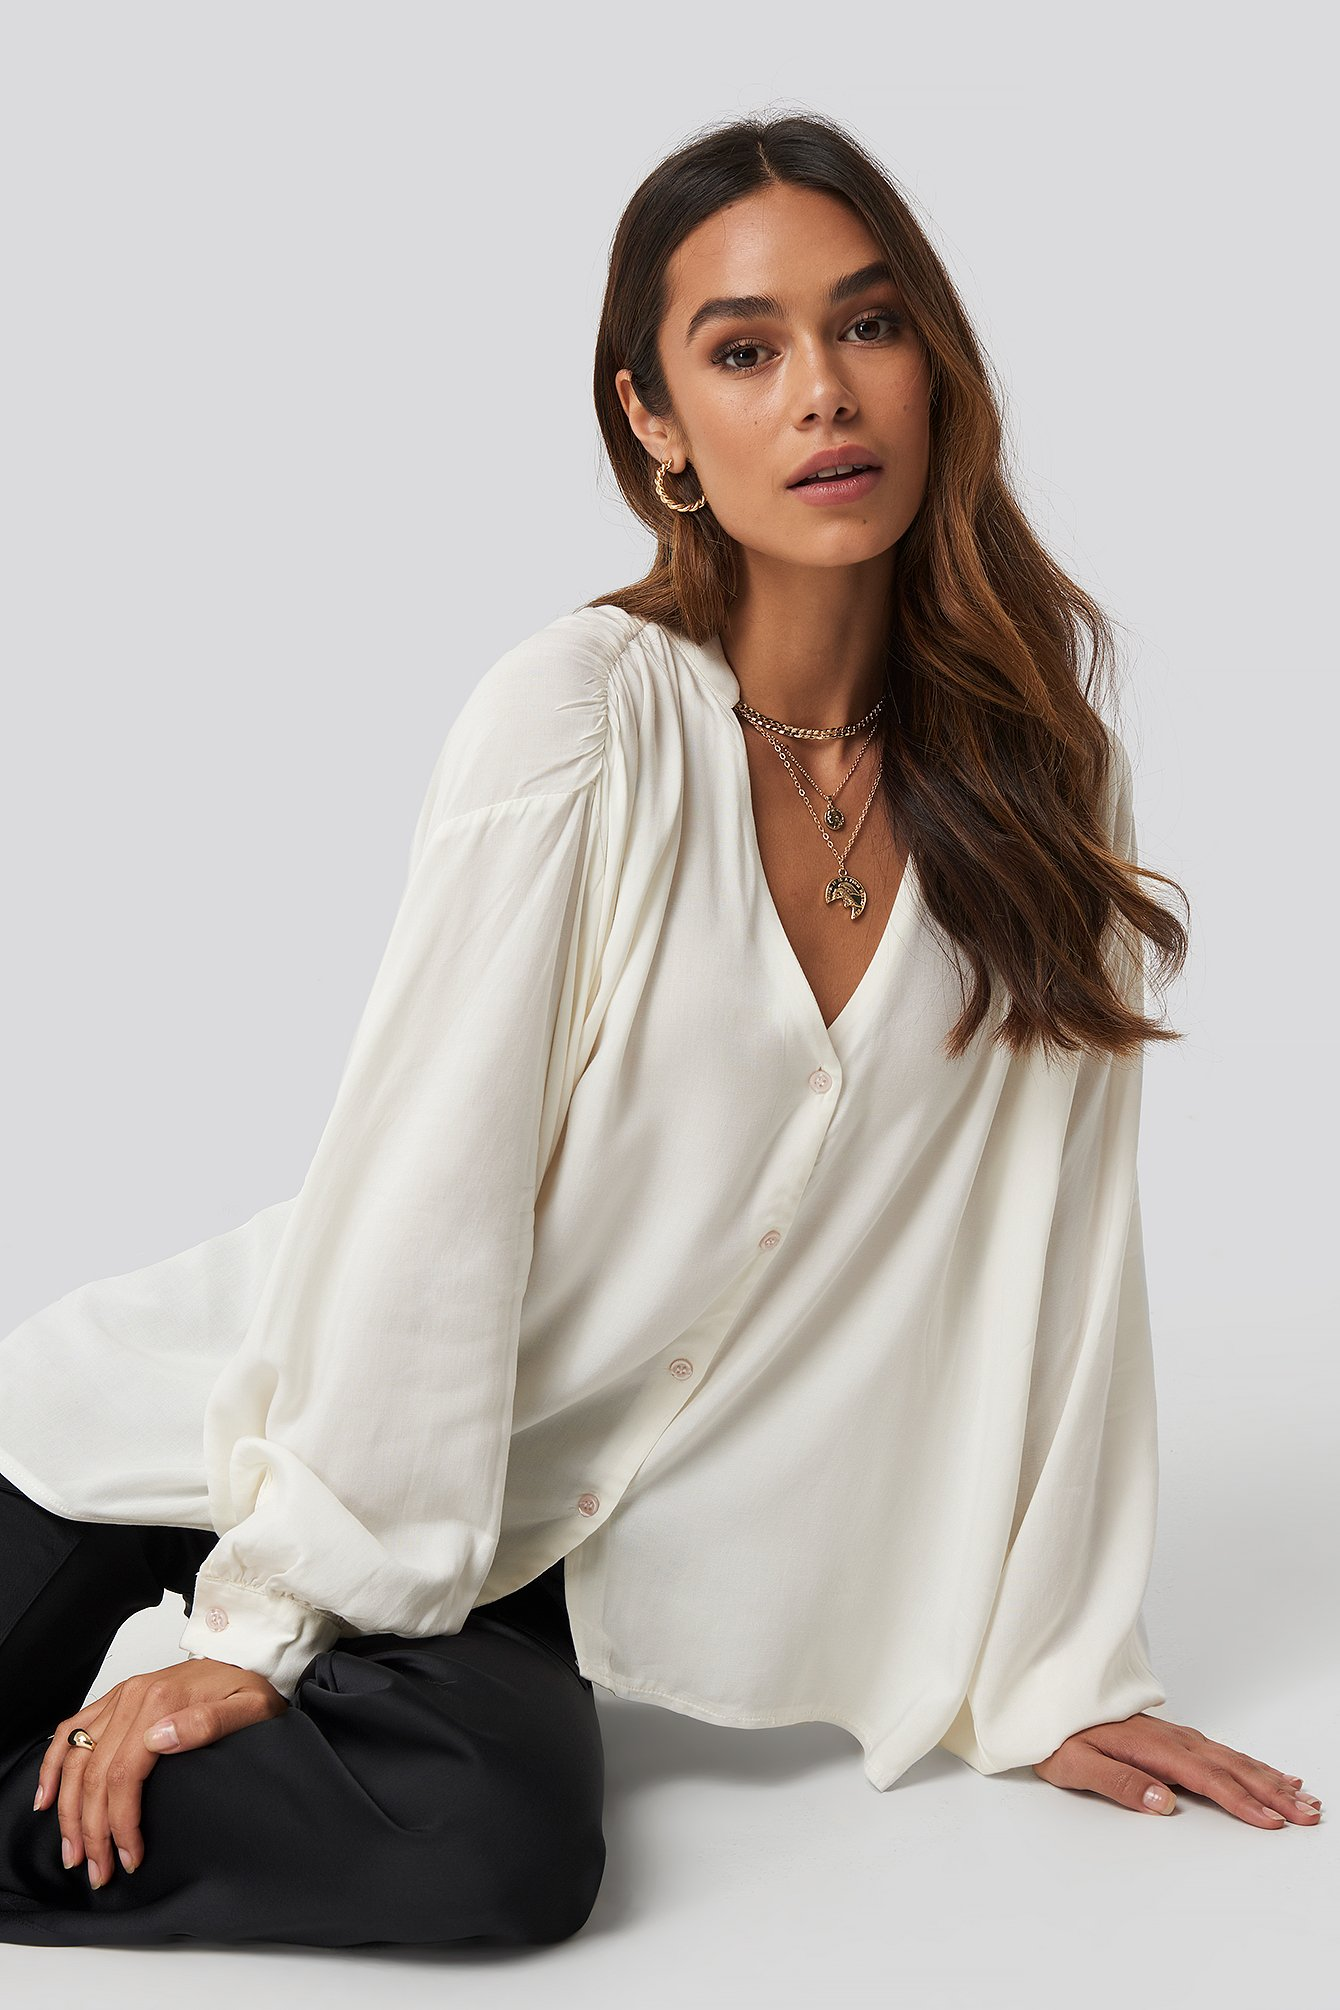 Queen Of Jetlags X Na-kd Deep Neck Blouse - White In Offwhite